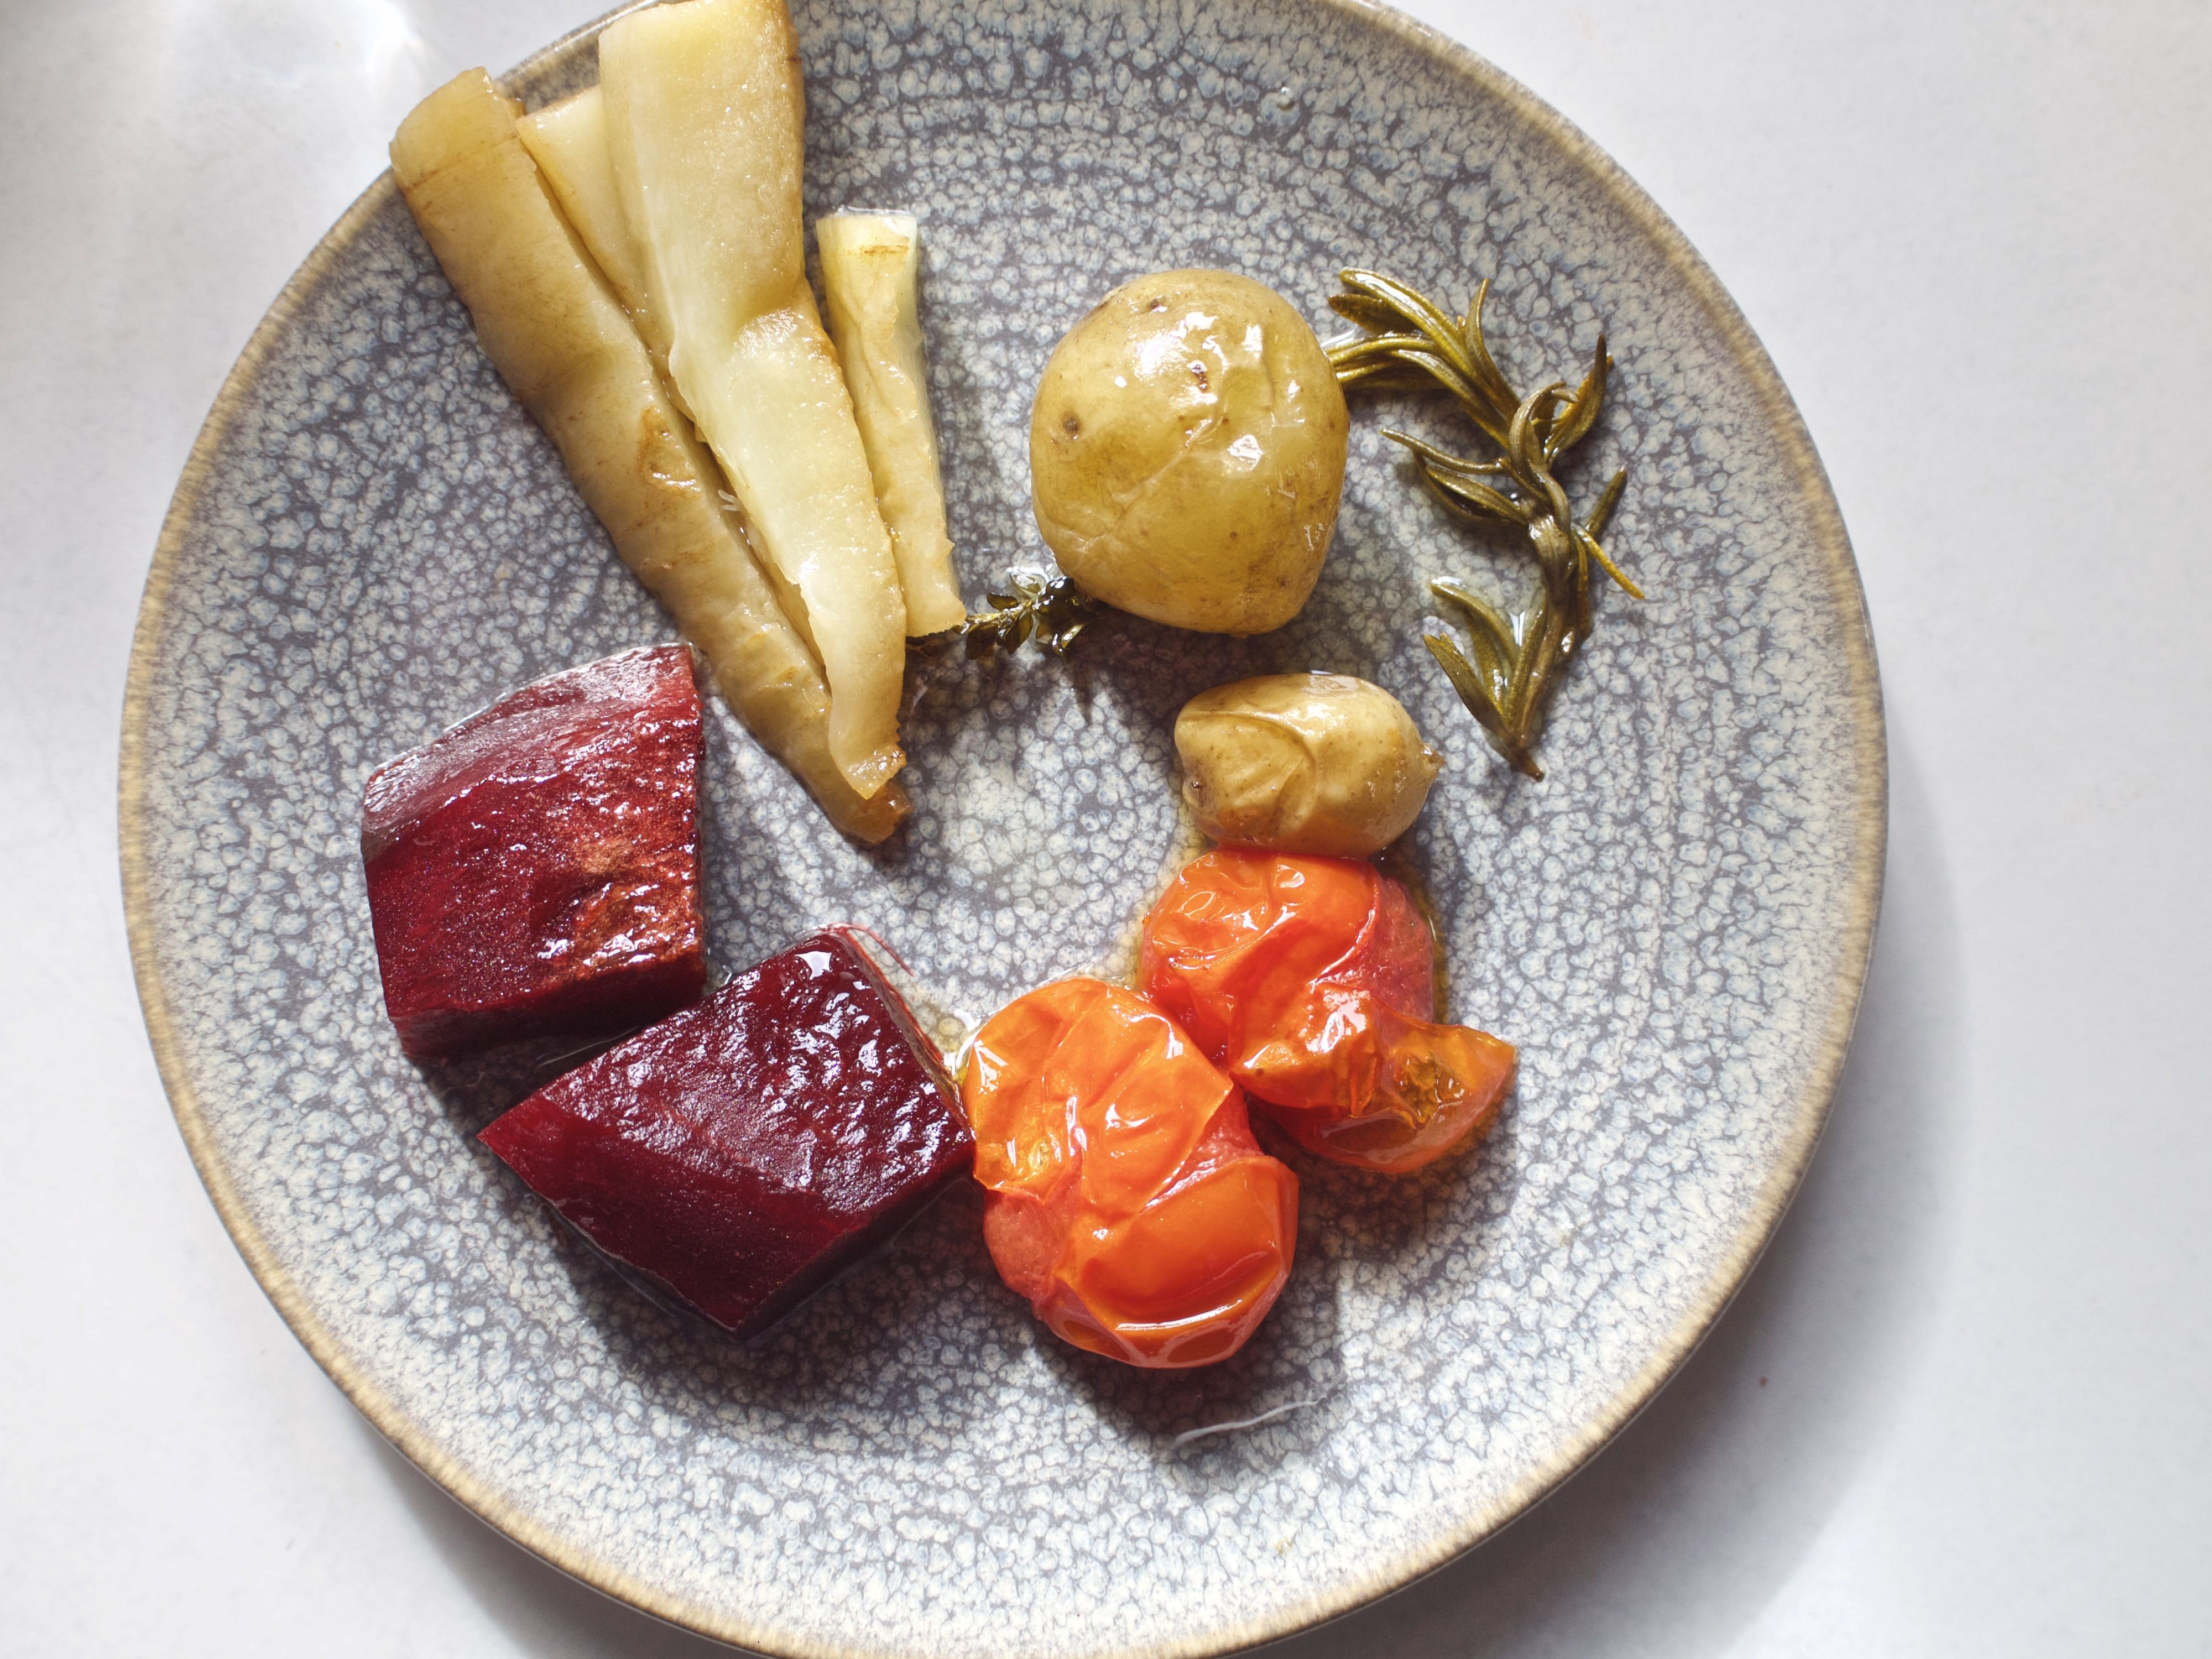 A plated of roasted parsnips, red beets, withered confited tomatoes, potatoes, and thyme.